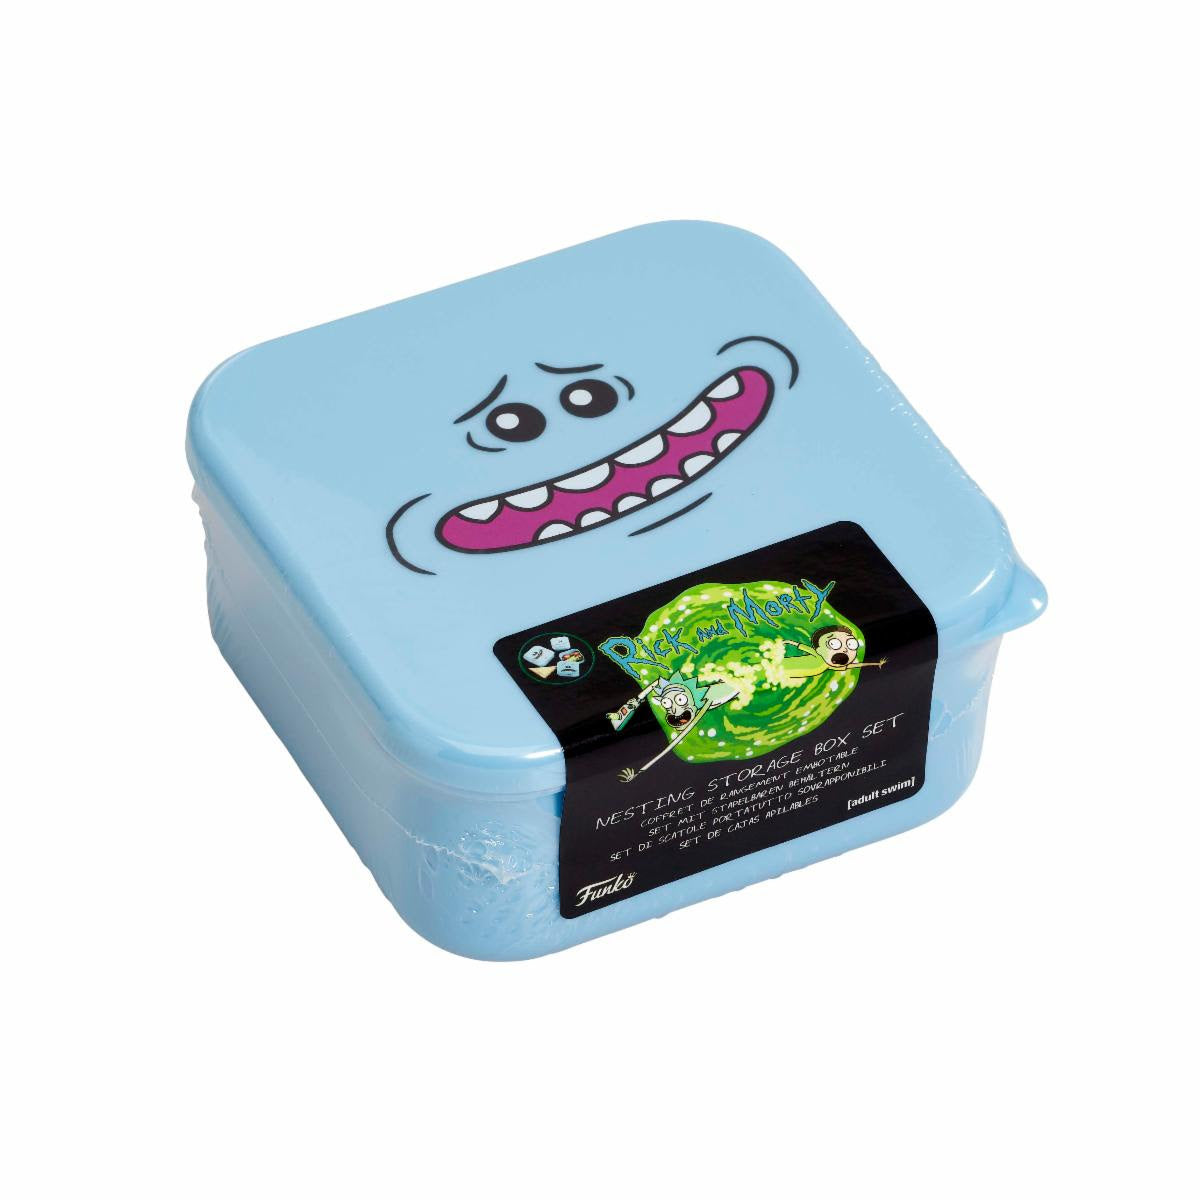 Rick & Morty: Plastic Storage Set: Mr. Meeseeks